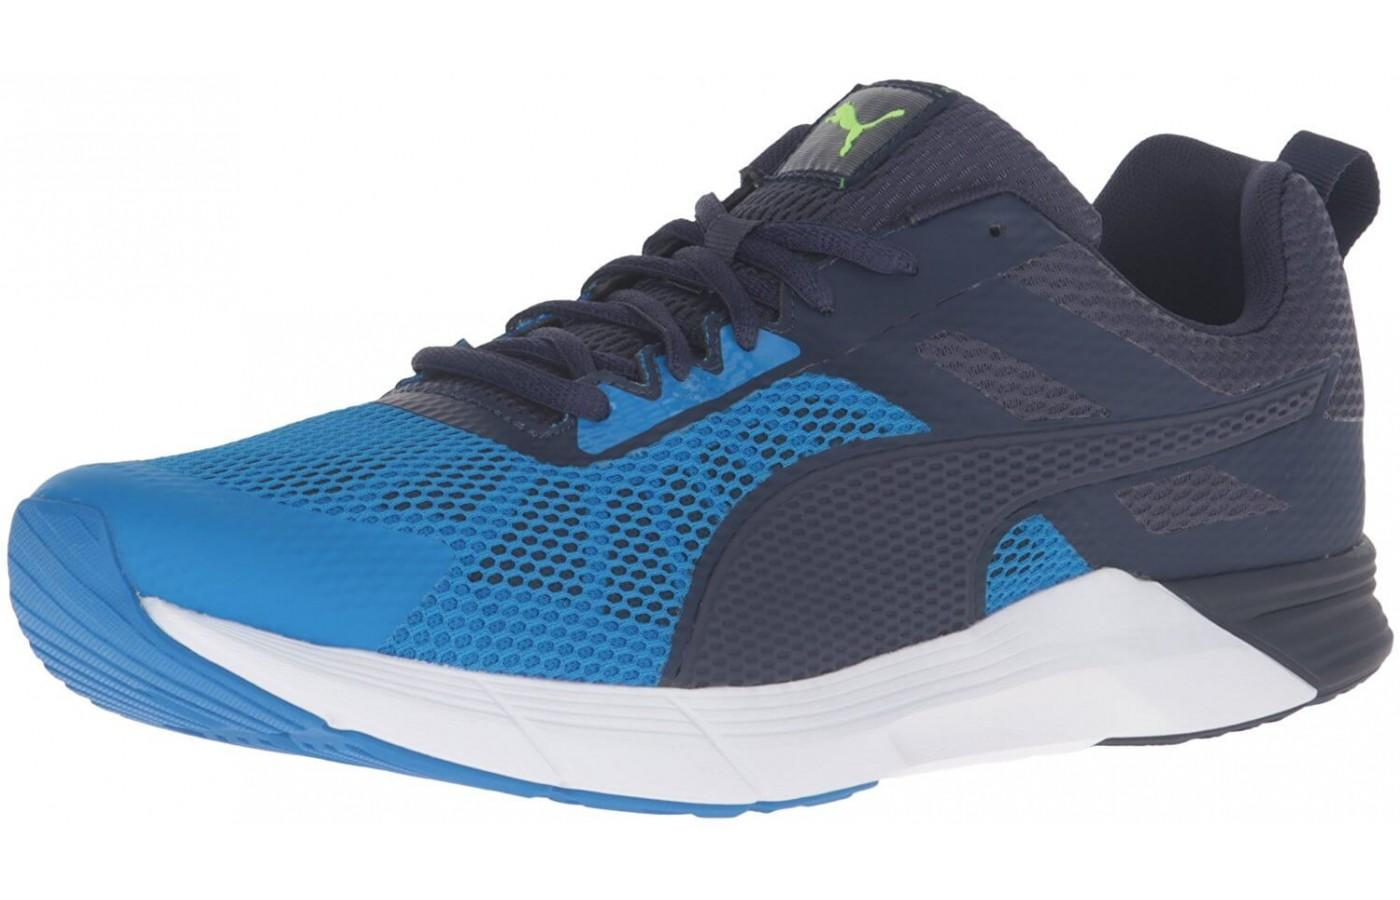 Puma Propel as shown from the front/side